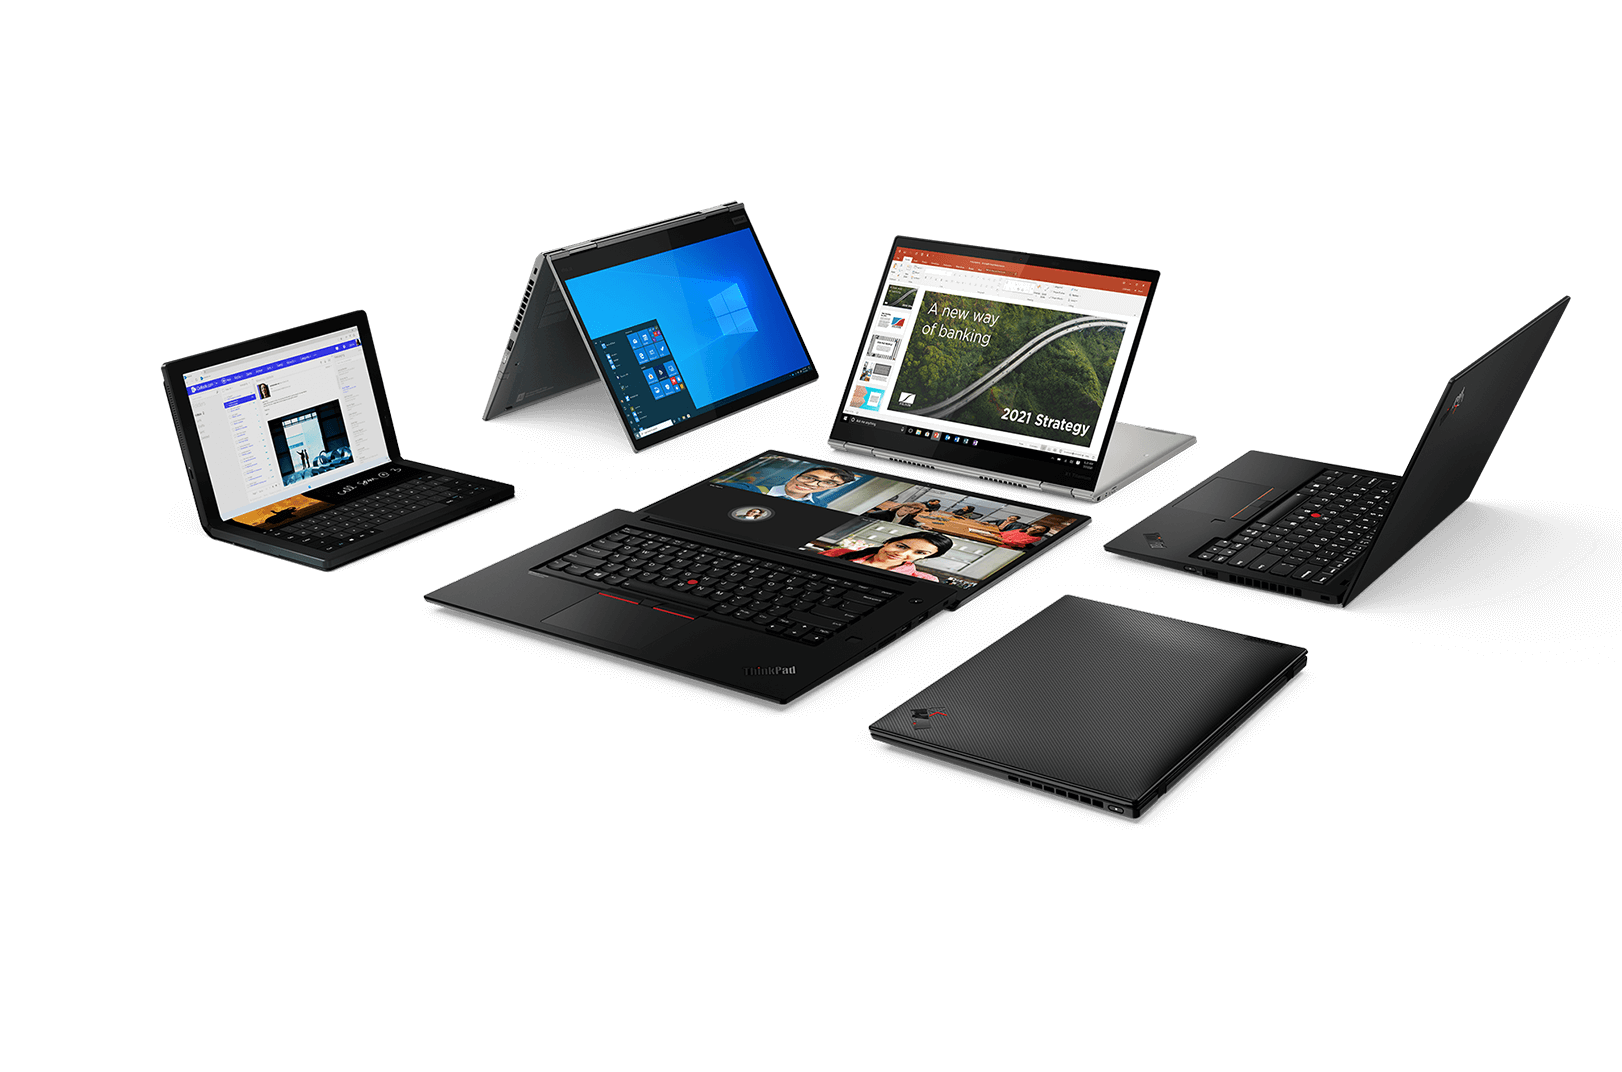 Lenovo ThinkPad X1 Series family of laptop computers